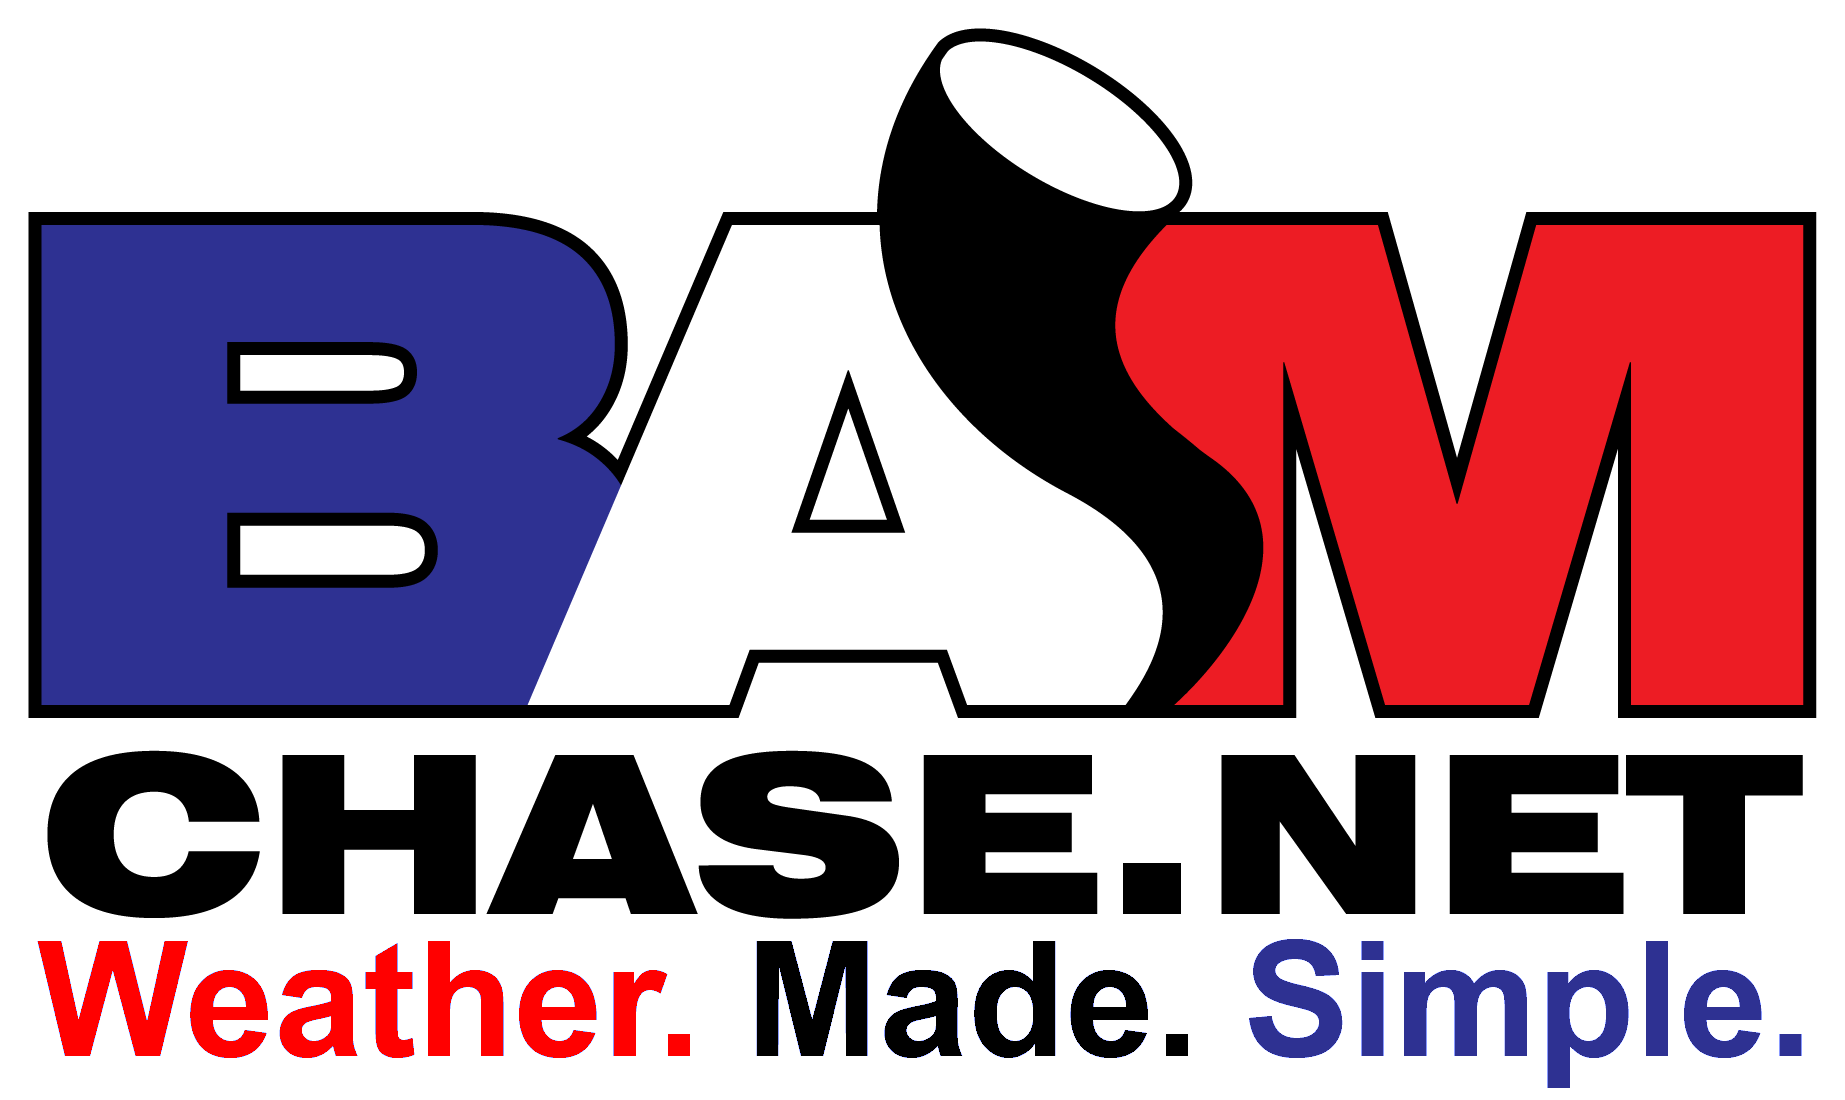 BAMChase.net